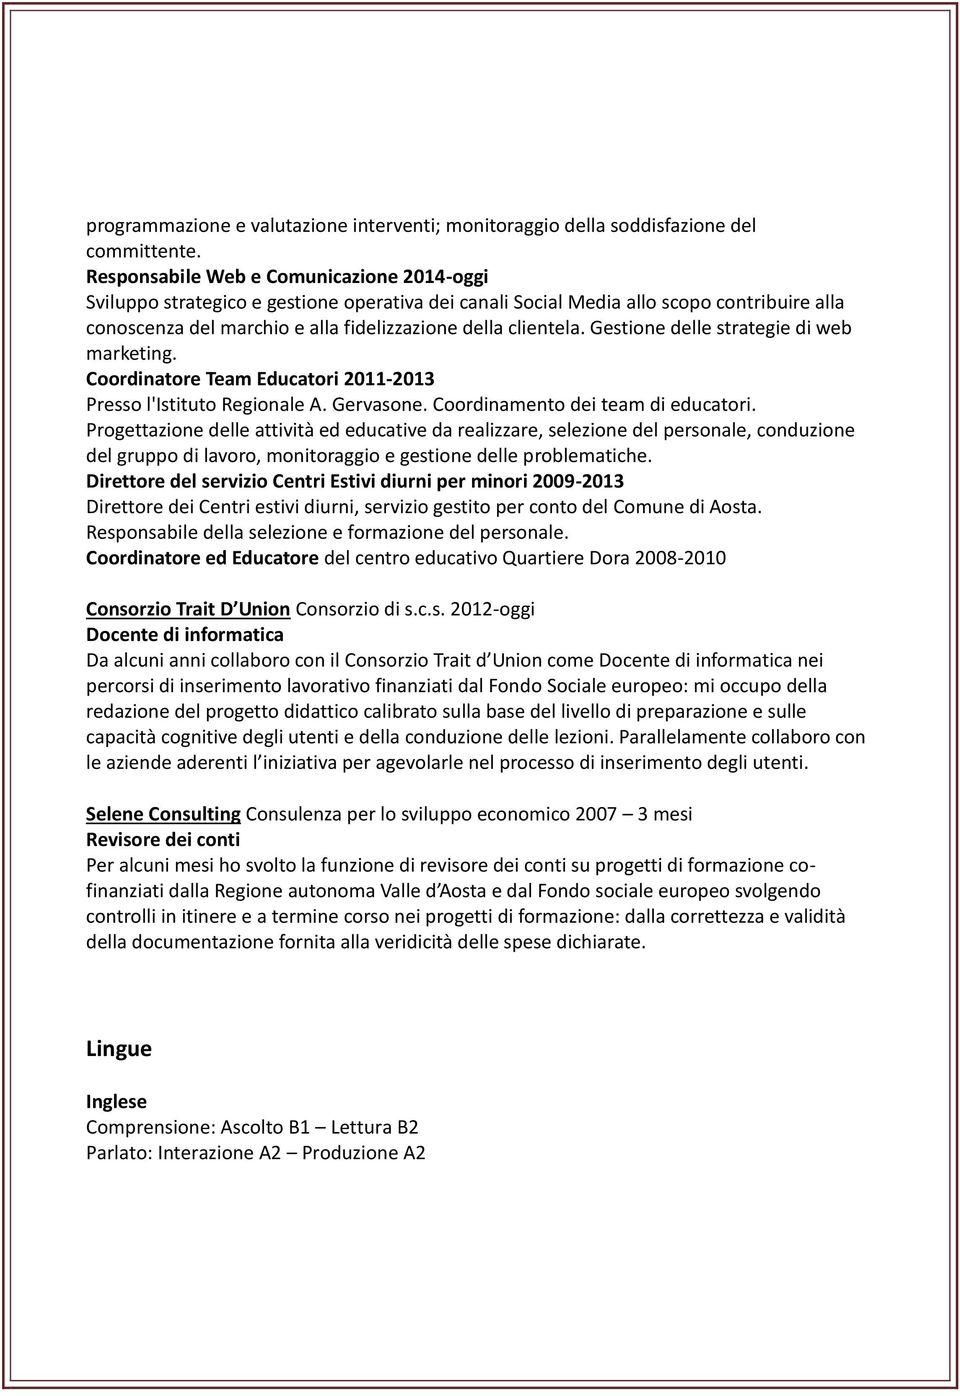 Gestione delle strategie di web marketing. Coordinatore Team Educatori 2011-2013 Presso l'istituto Regionale A. Gervasone. Coordinamento dei team di educatori.